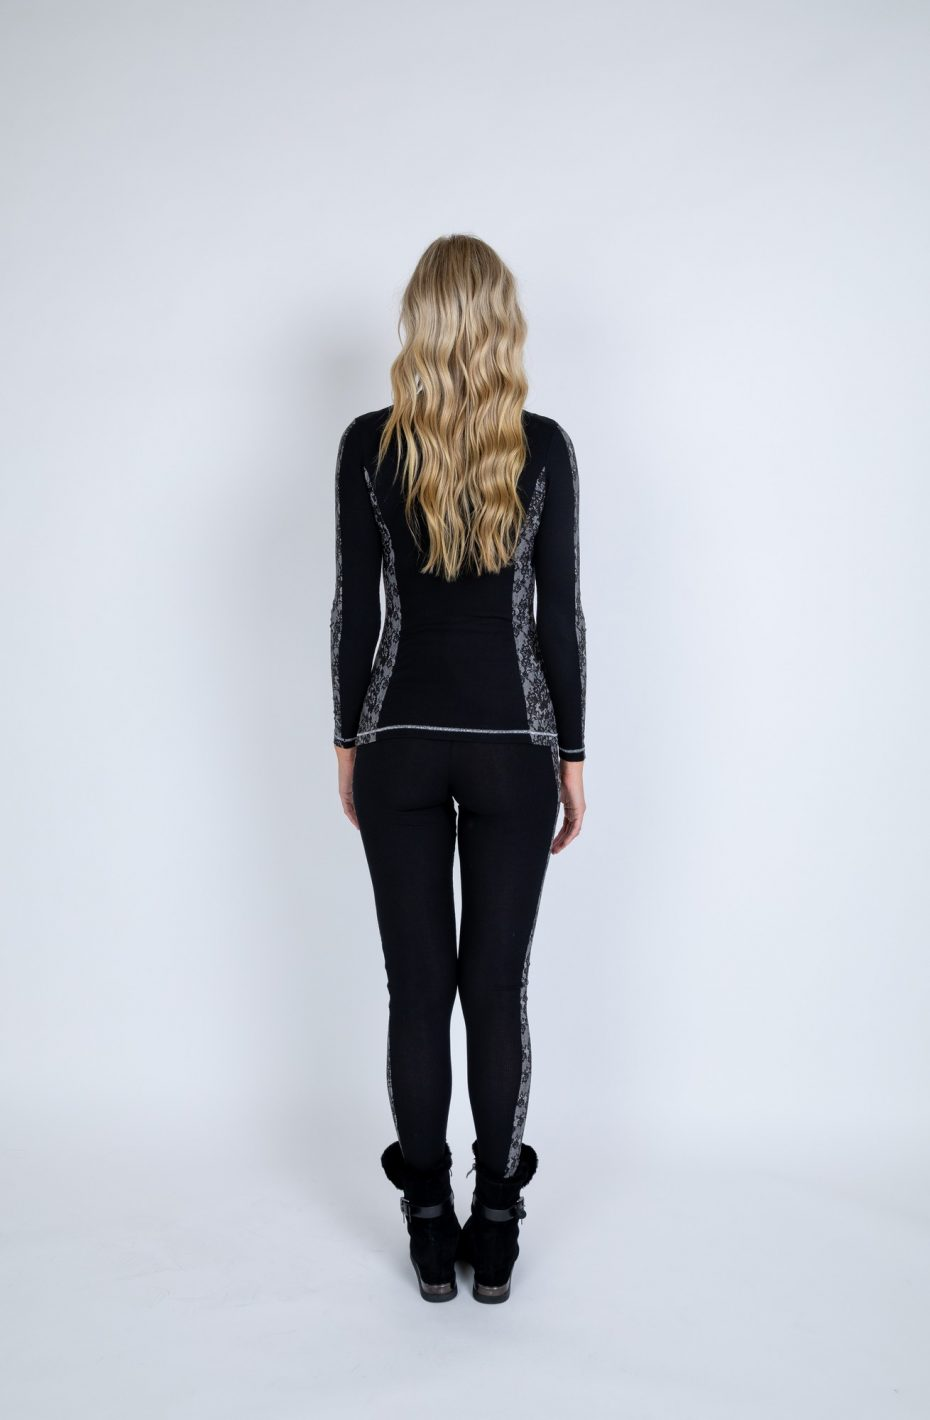 Lace top and leggings base layers back